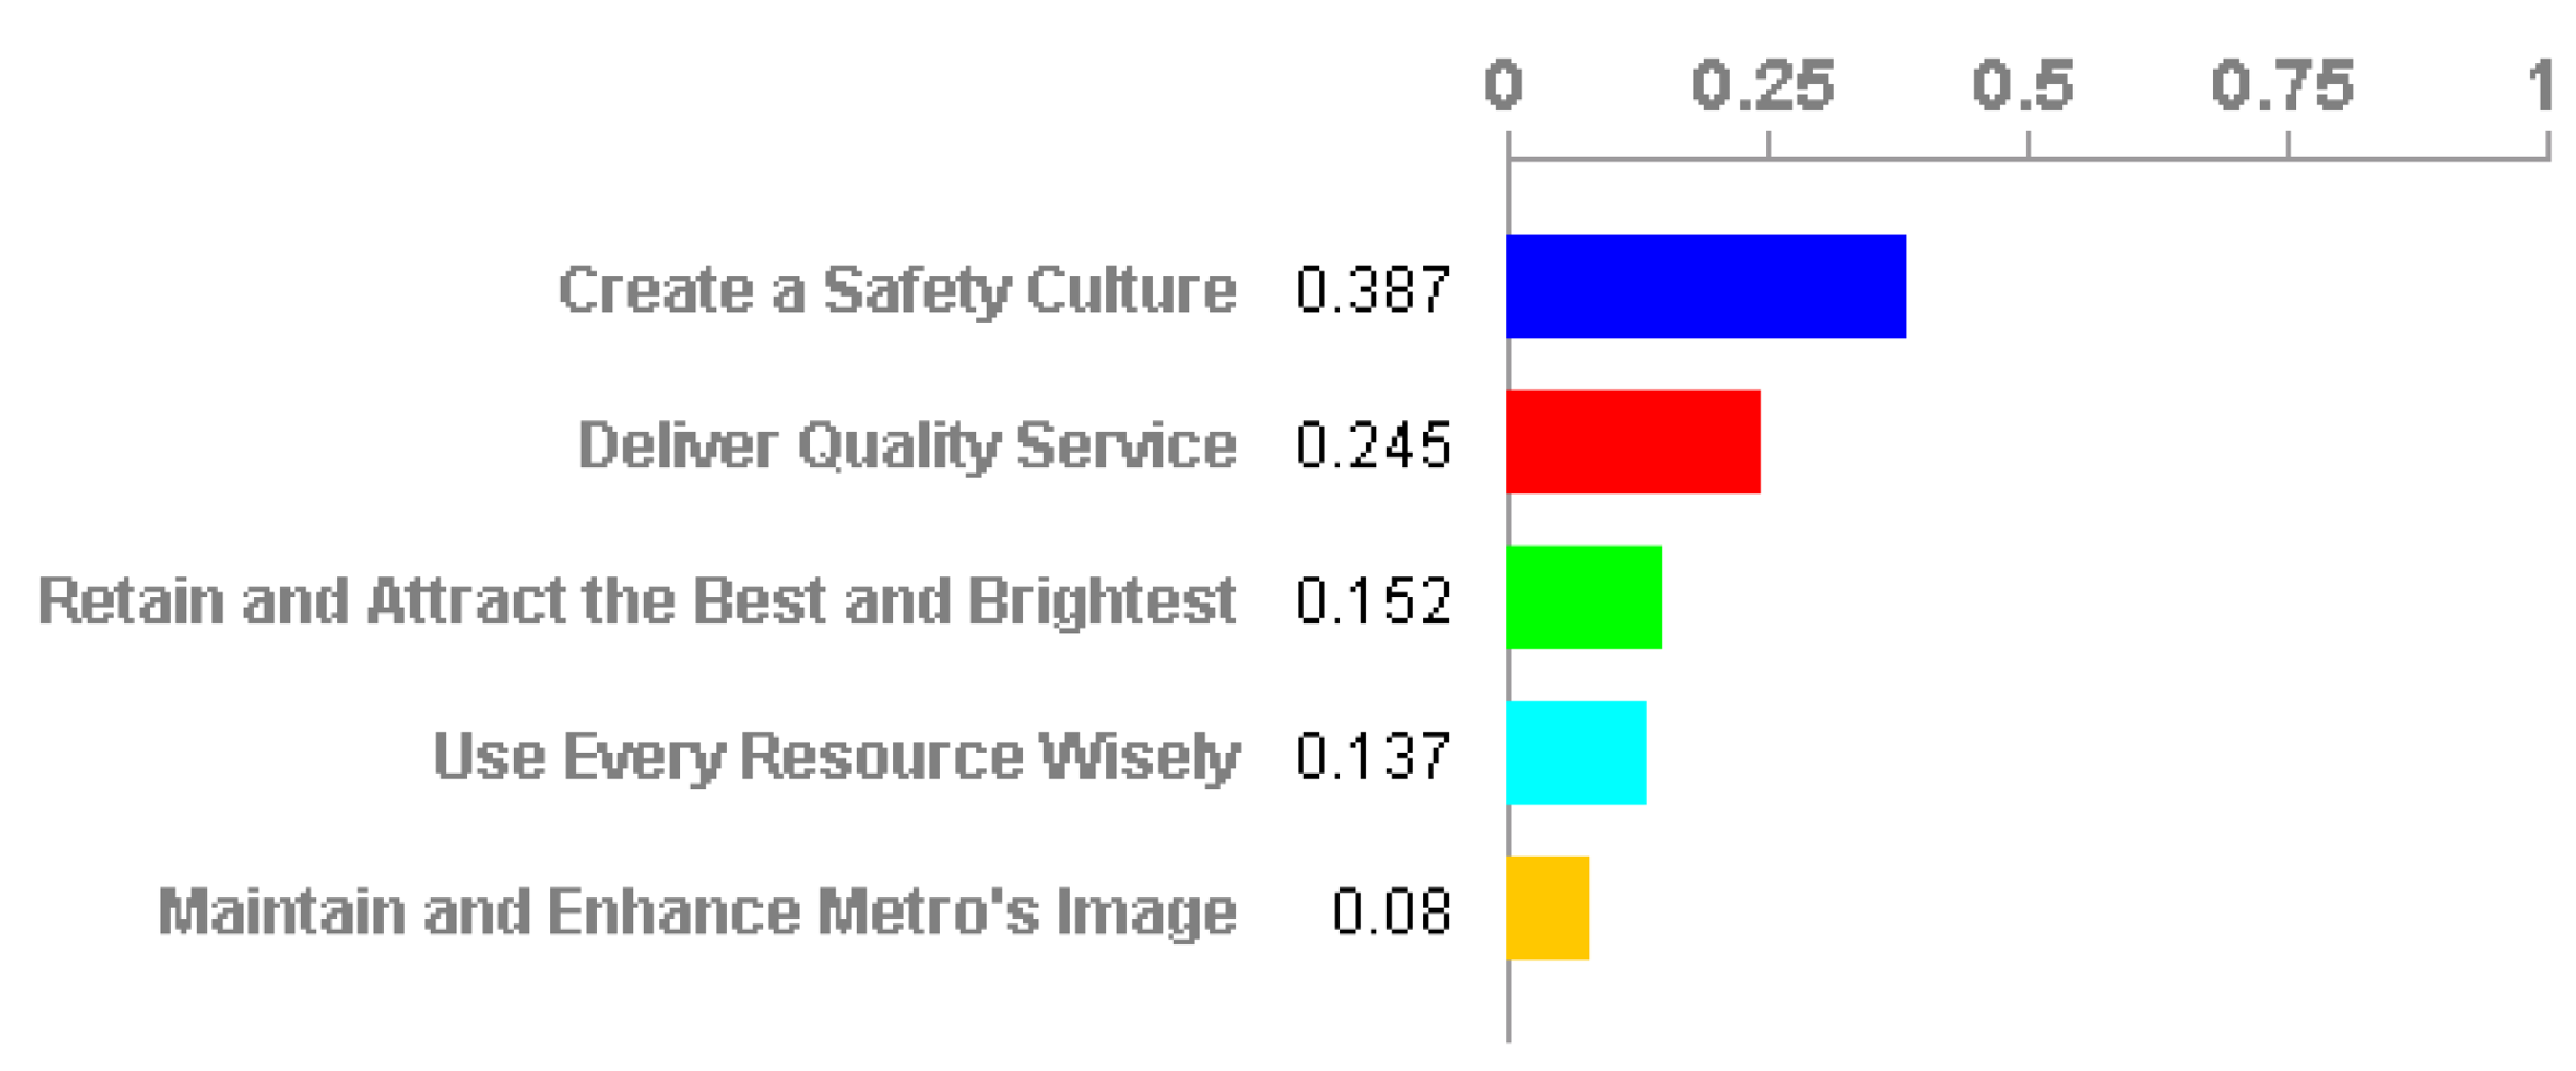 This is a survey from WMATA showing priorities as voted upon by employees.